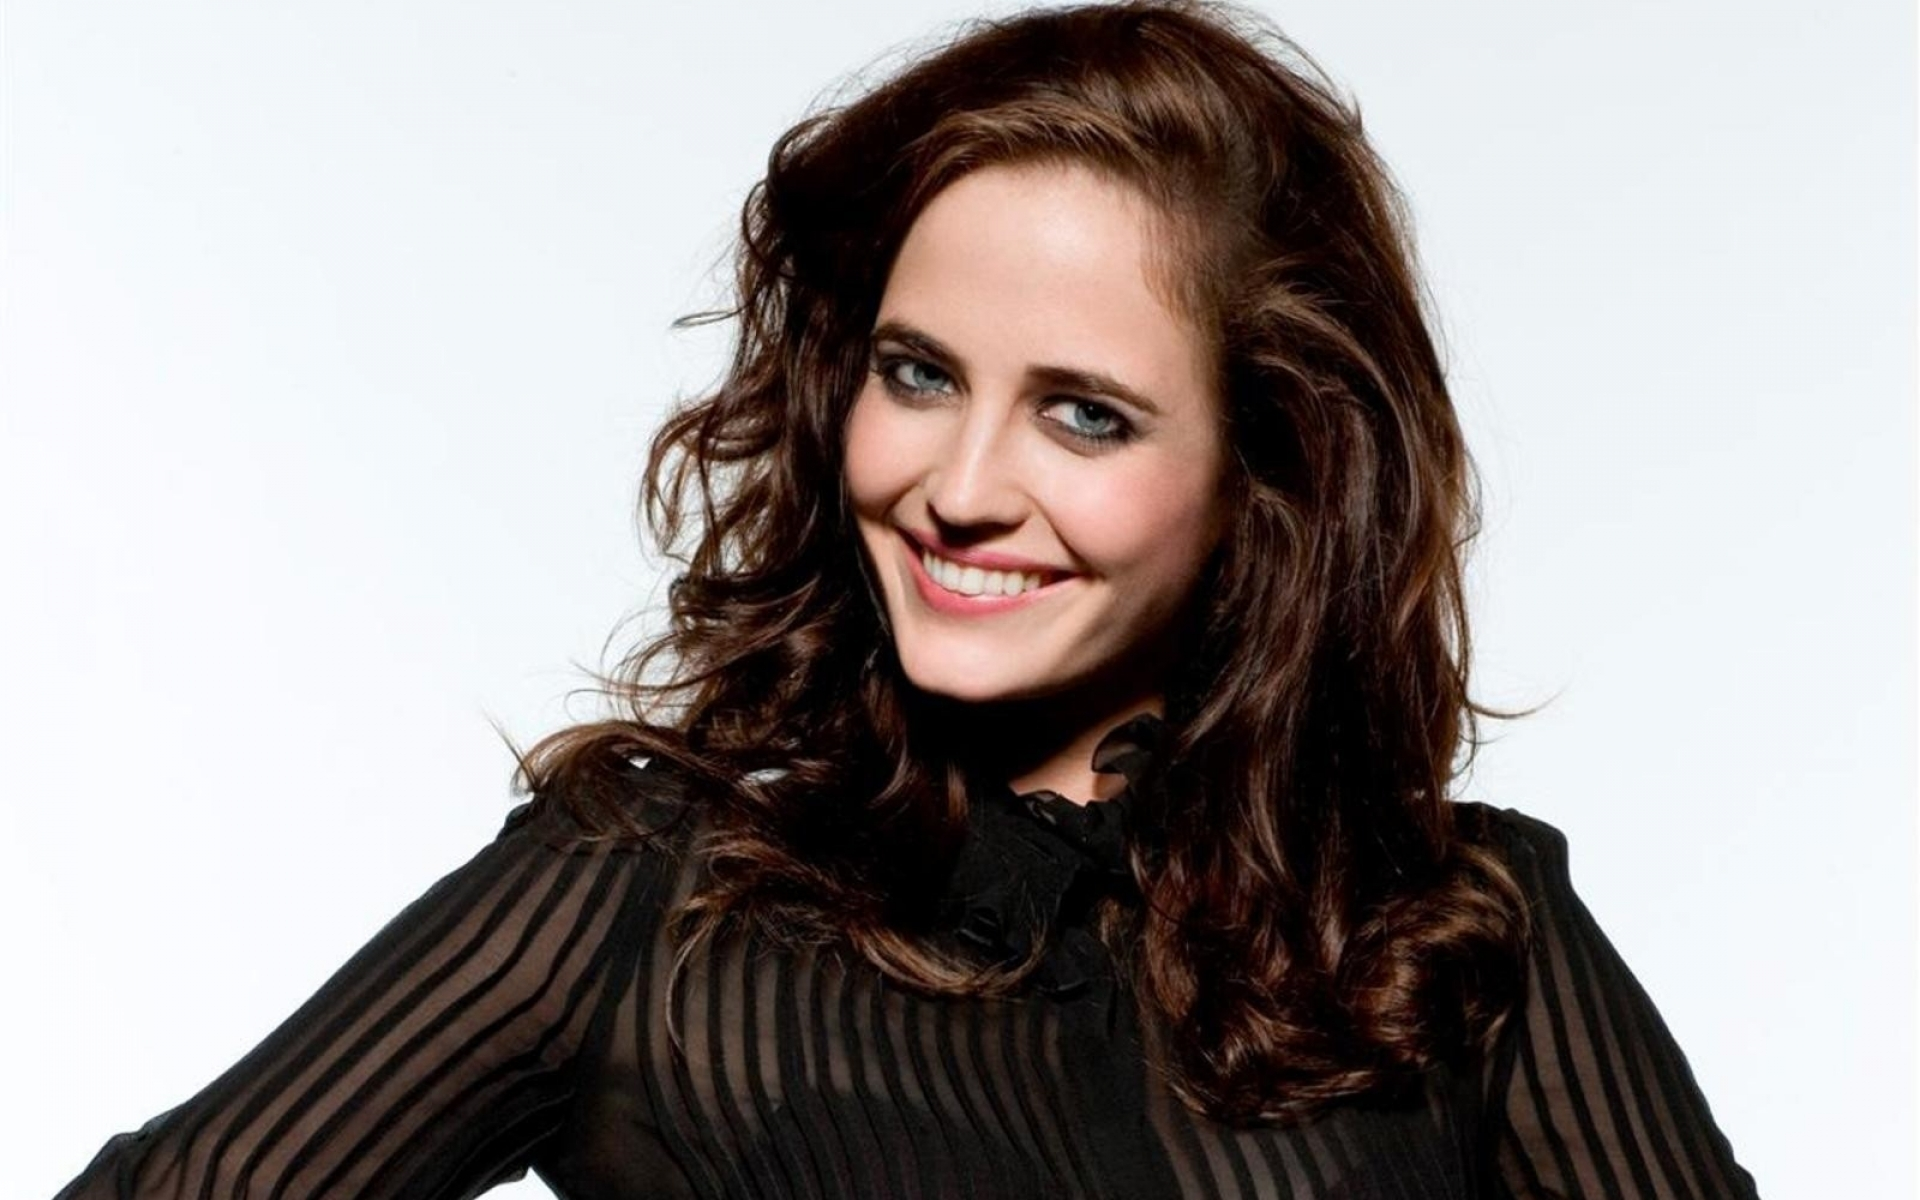 wonderful eva green beauty smile face look pose free mobile background hd desktop pictures